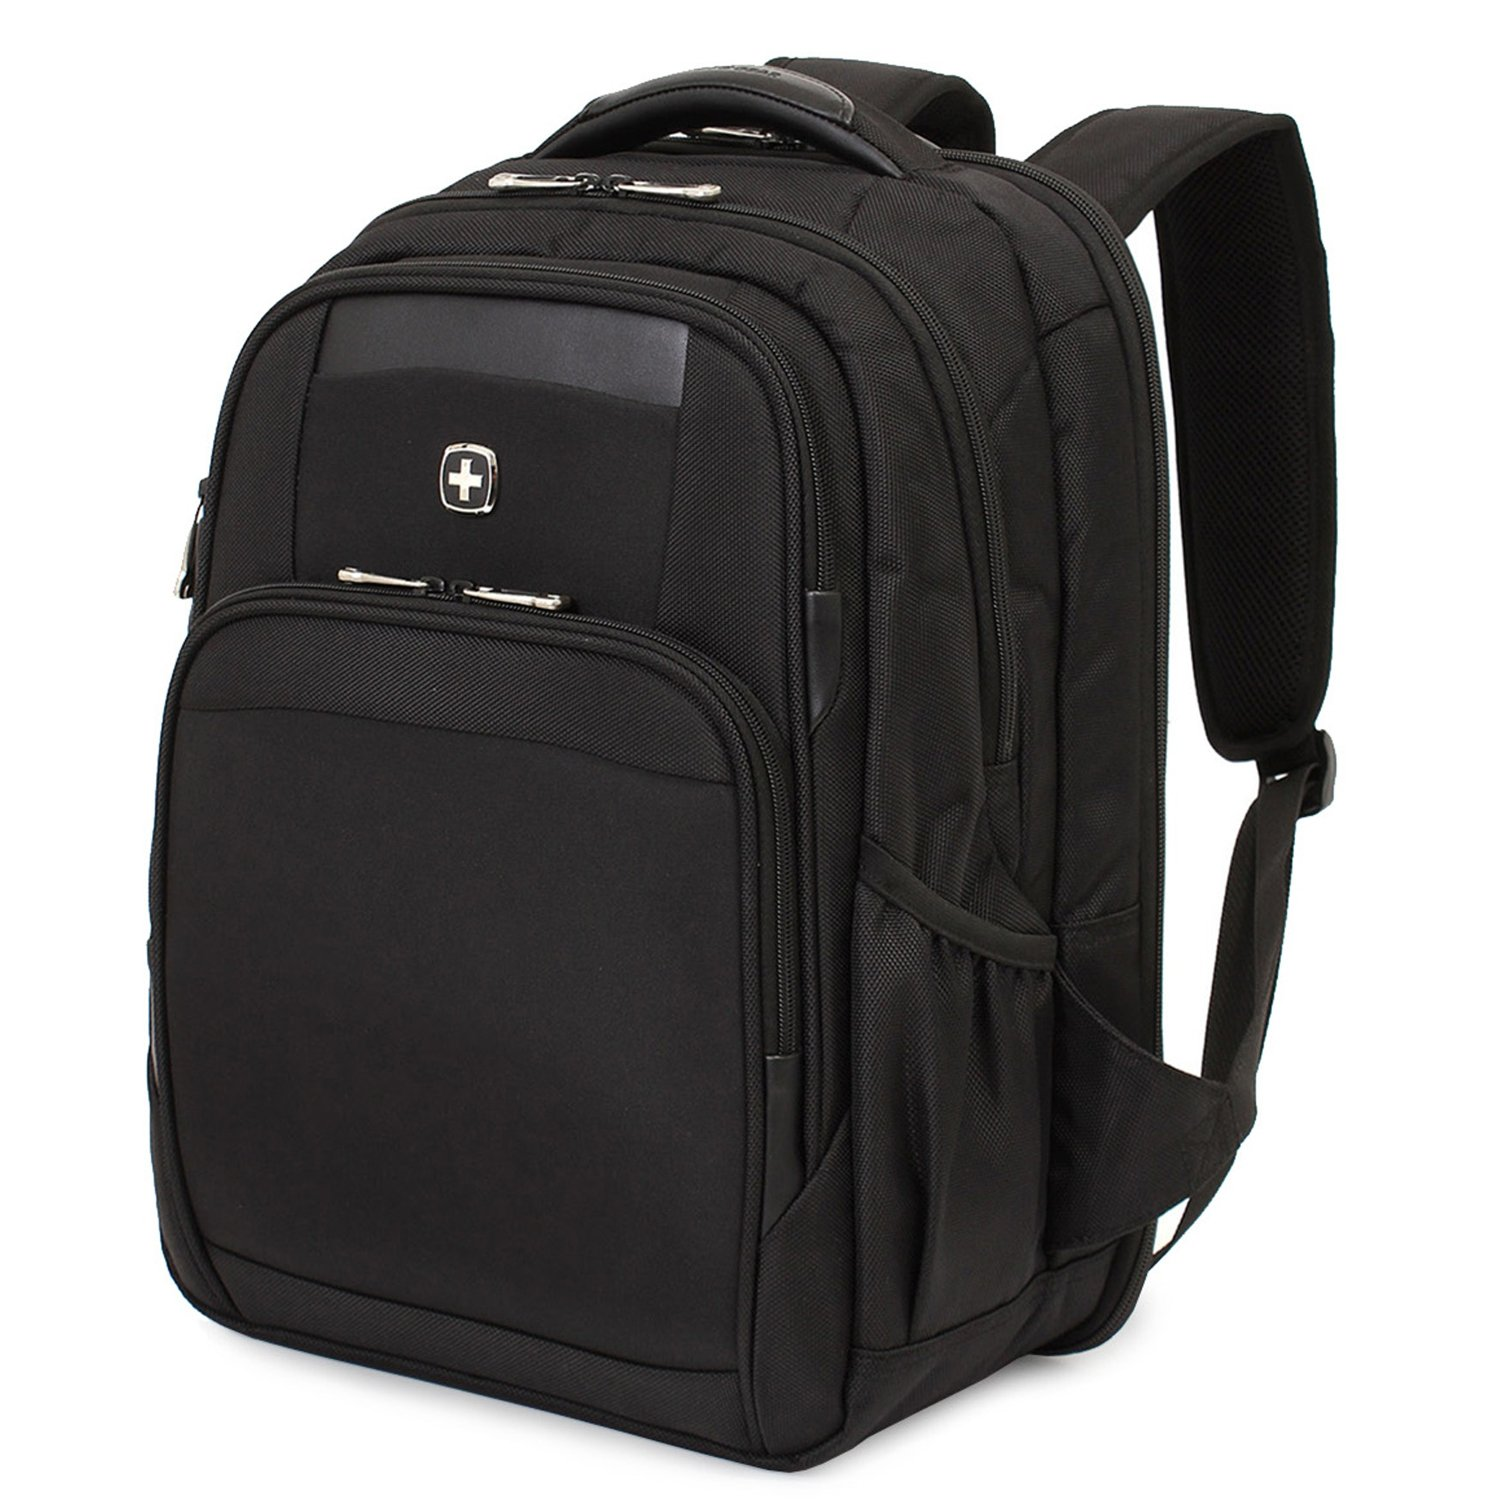 dd657bf747aa Get Quotations · Swiss Gear Scansmart Backpack